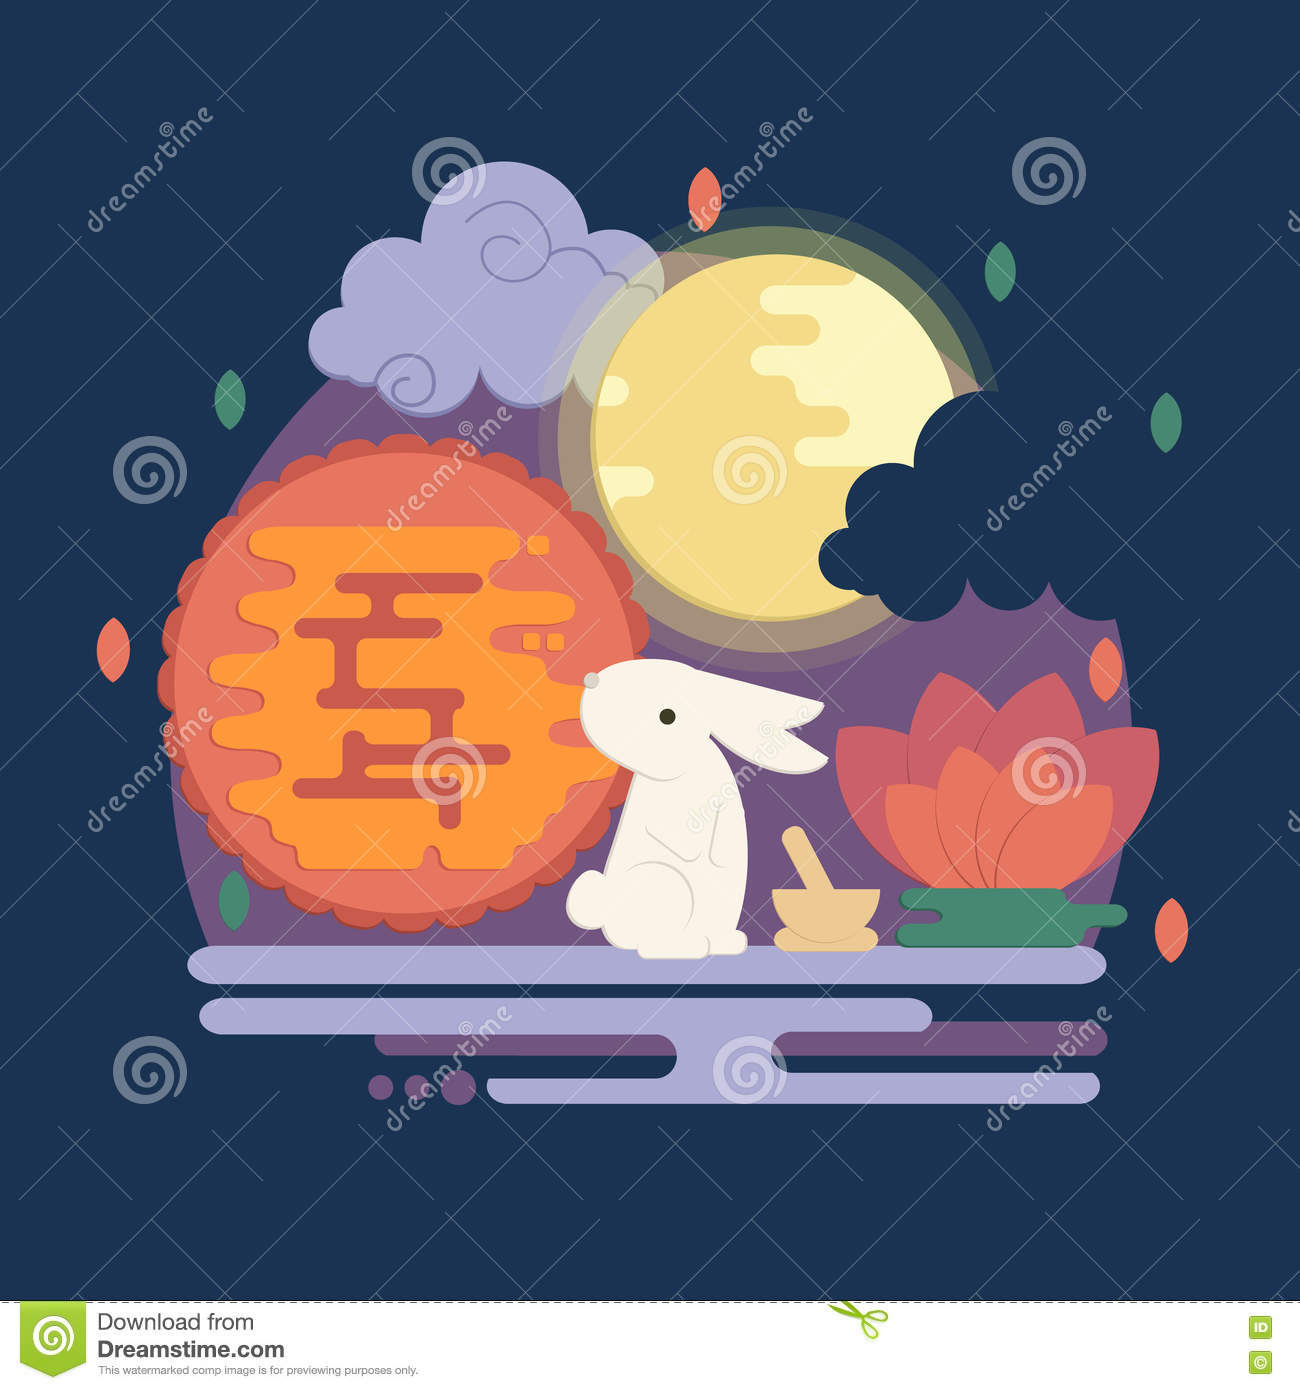 Download Chinese Mid Autumn Festival Illustration In Flat Style Stock Vector